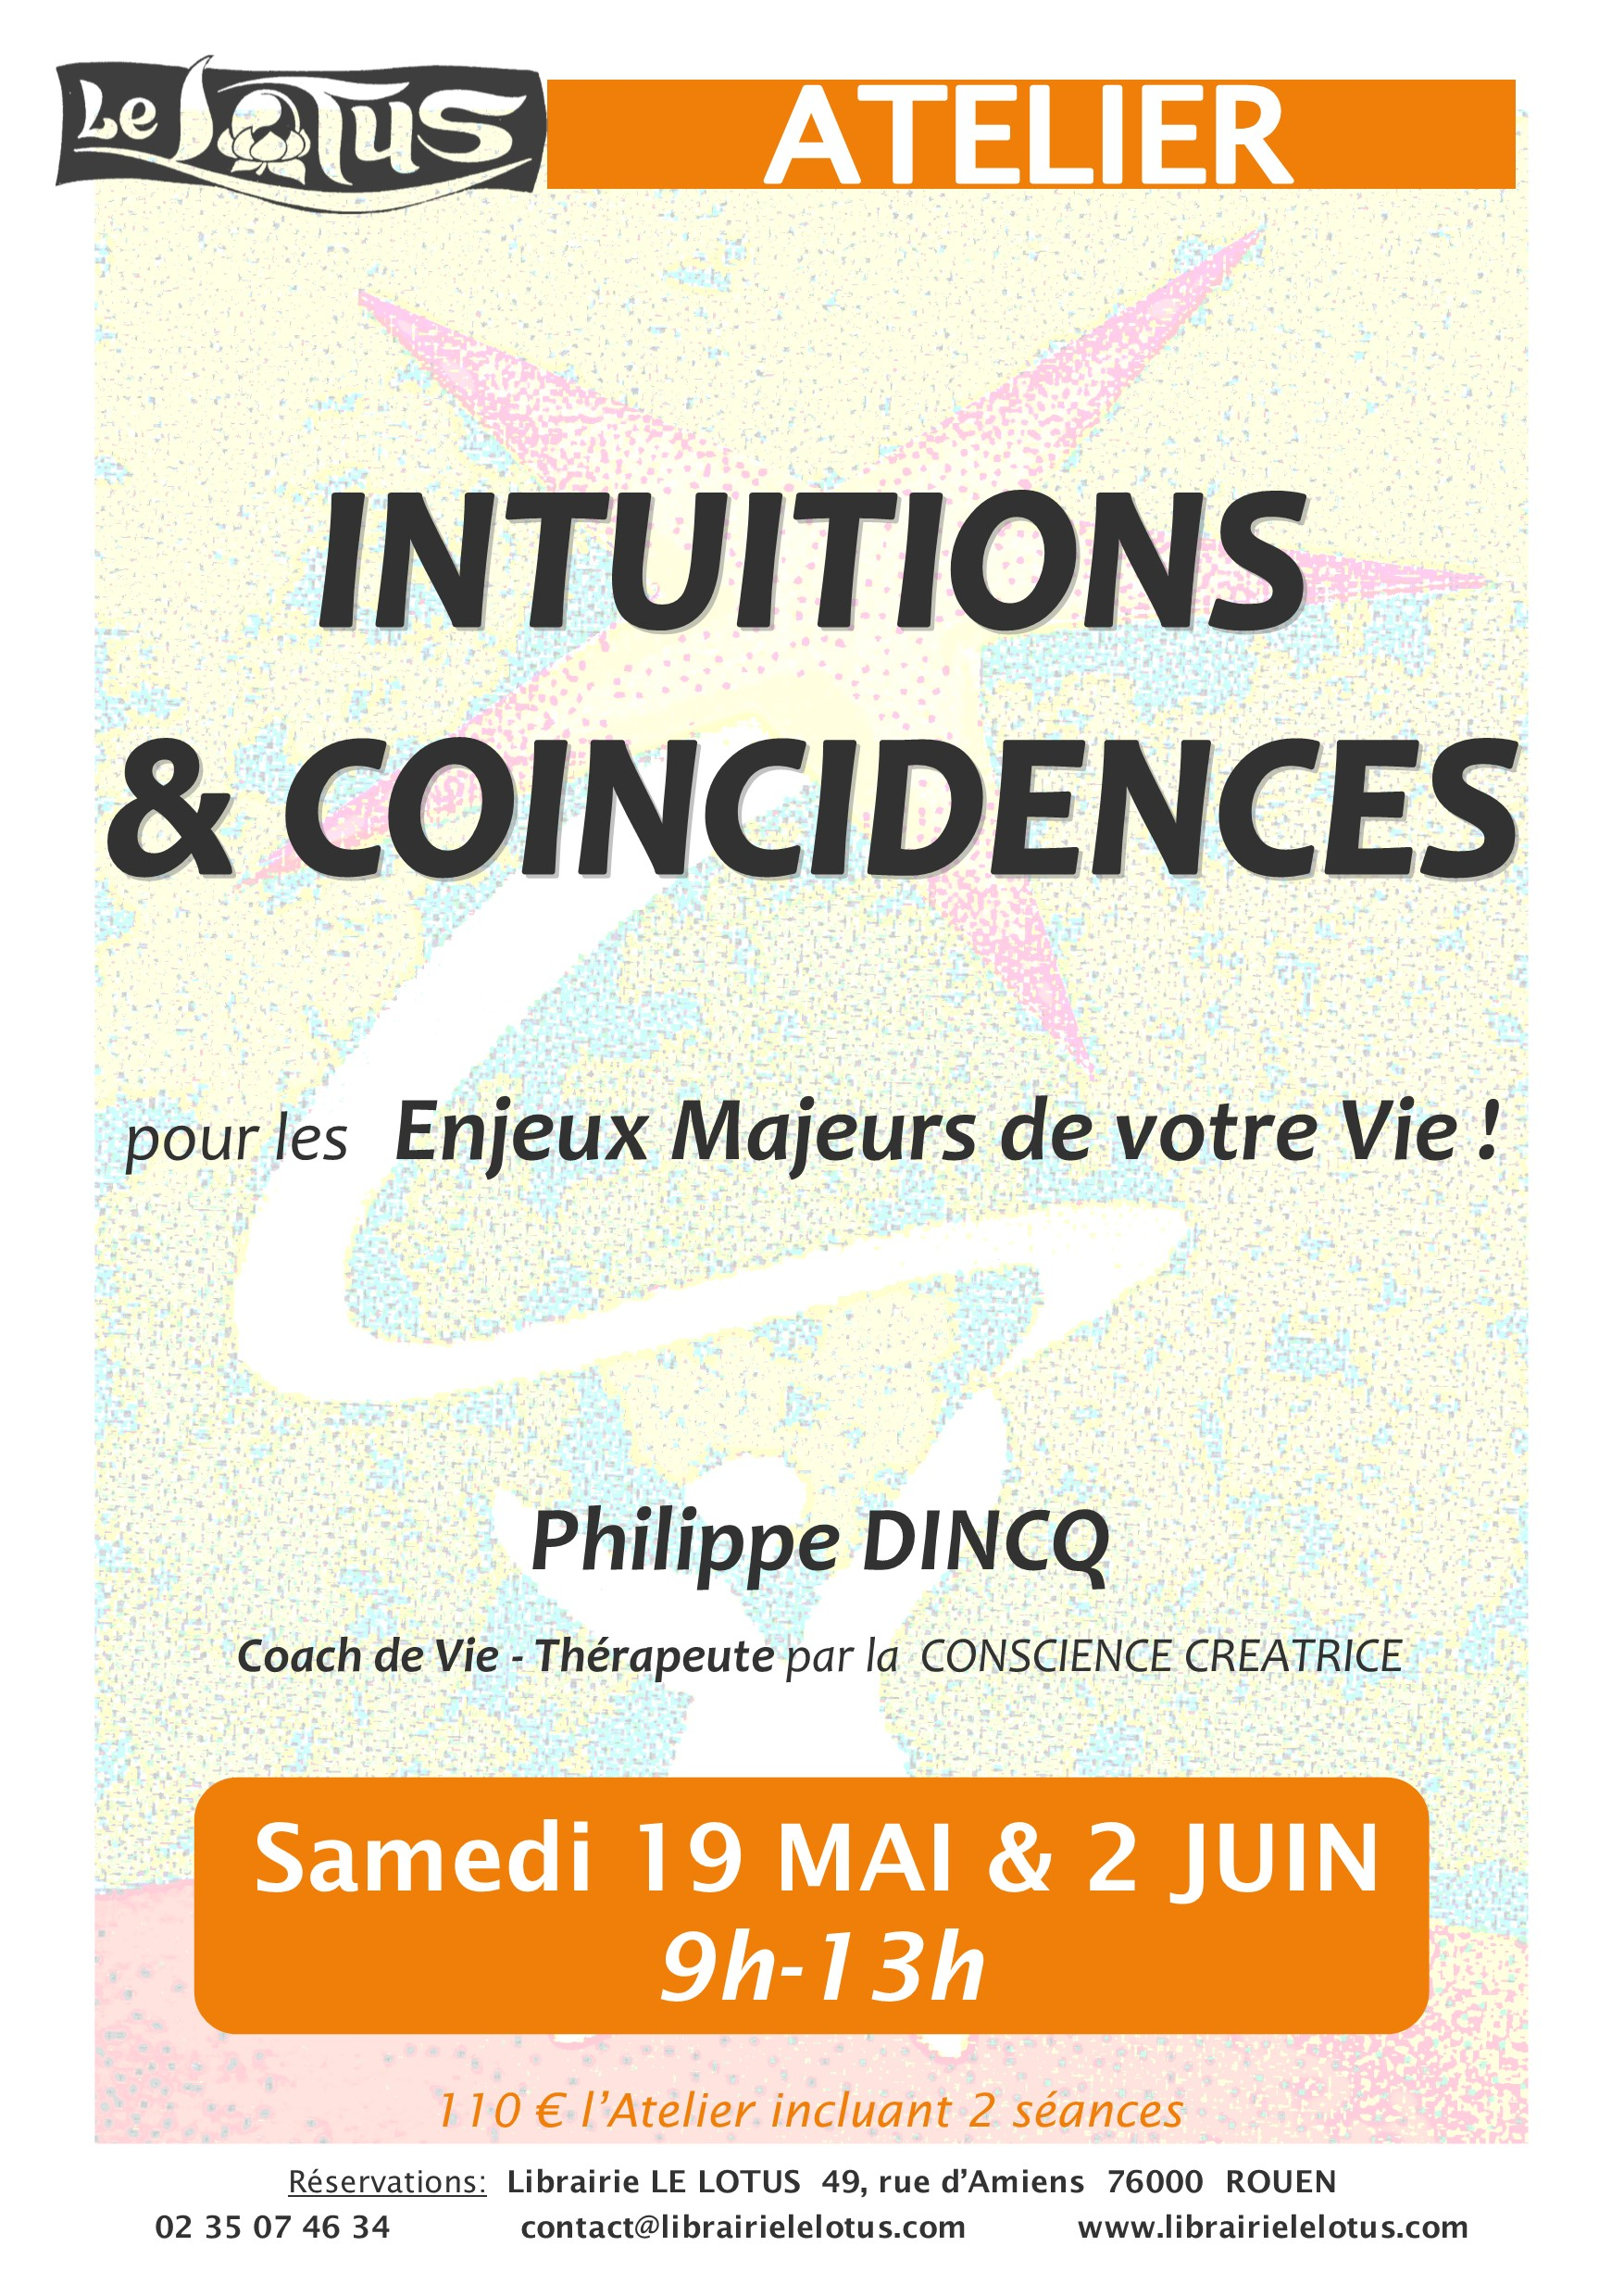 ATELIER - INTUITIONS & COINCIDENCES - MAI